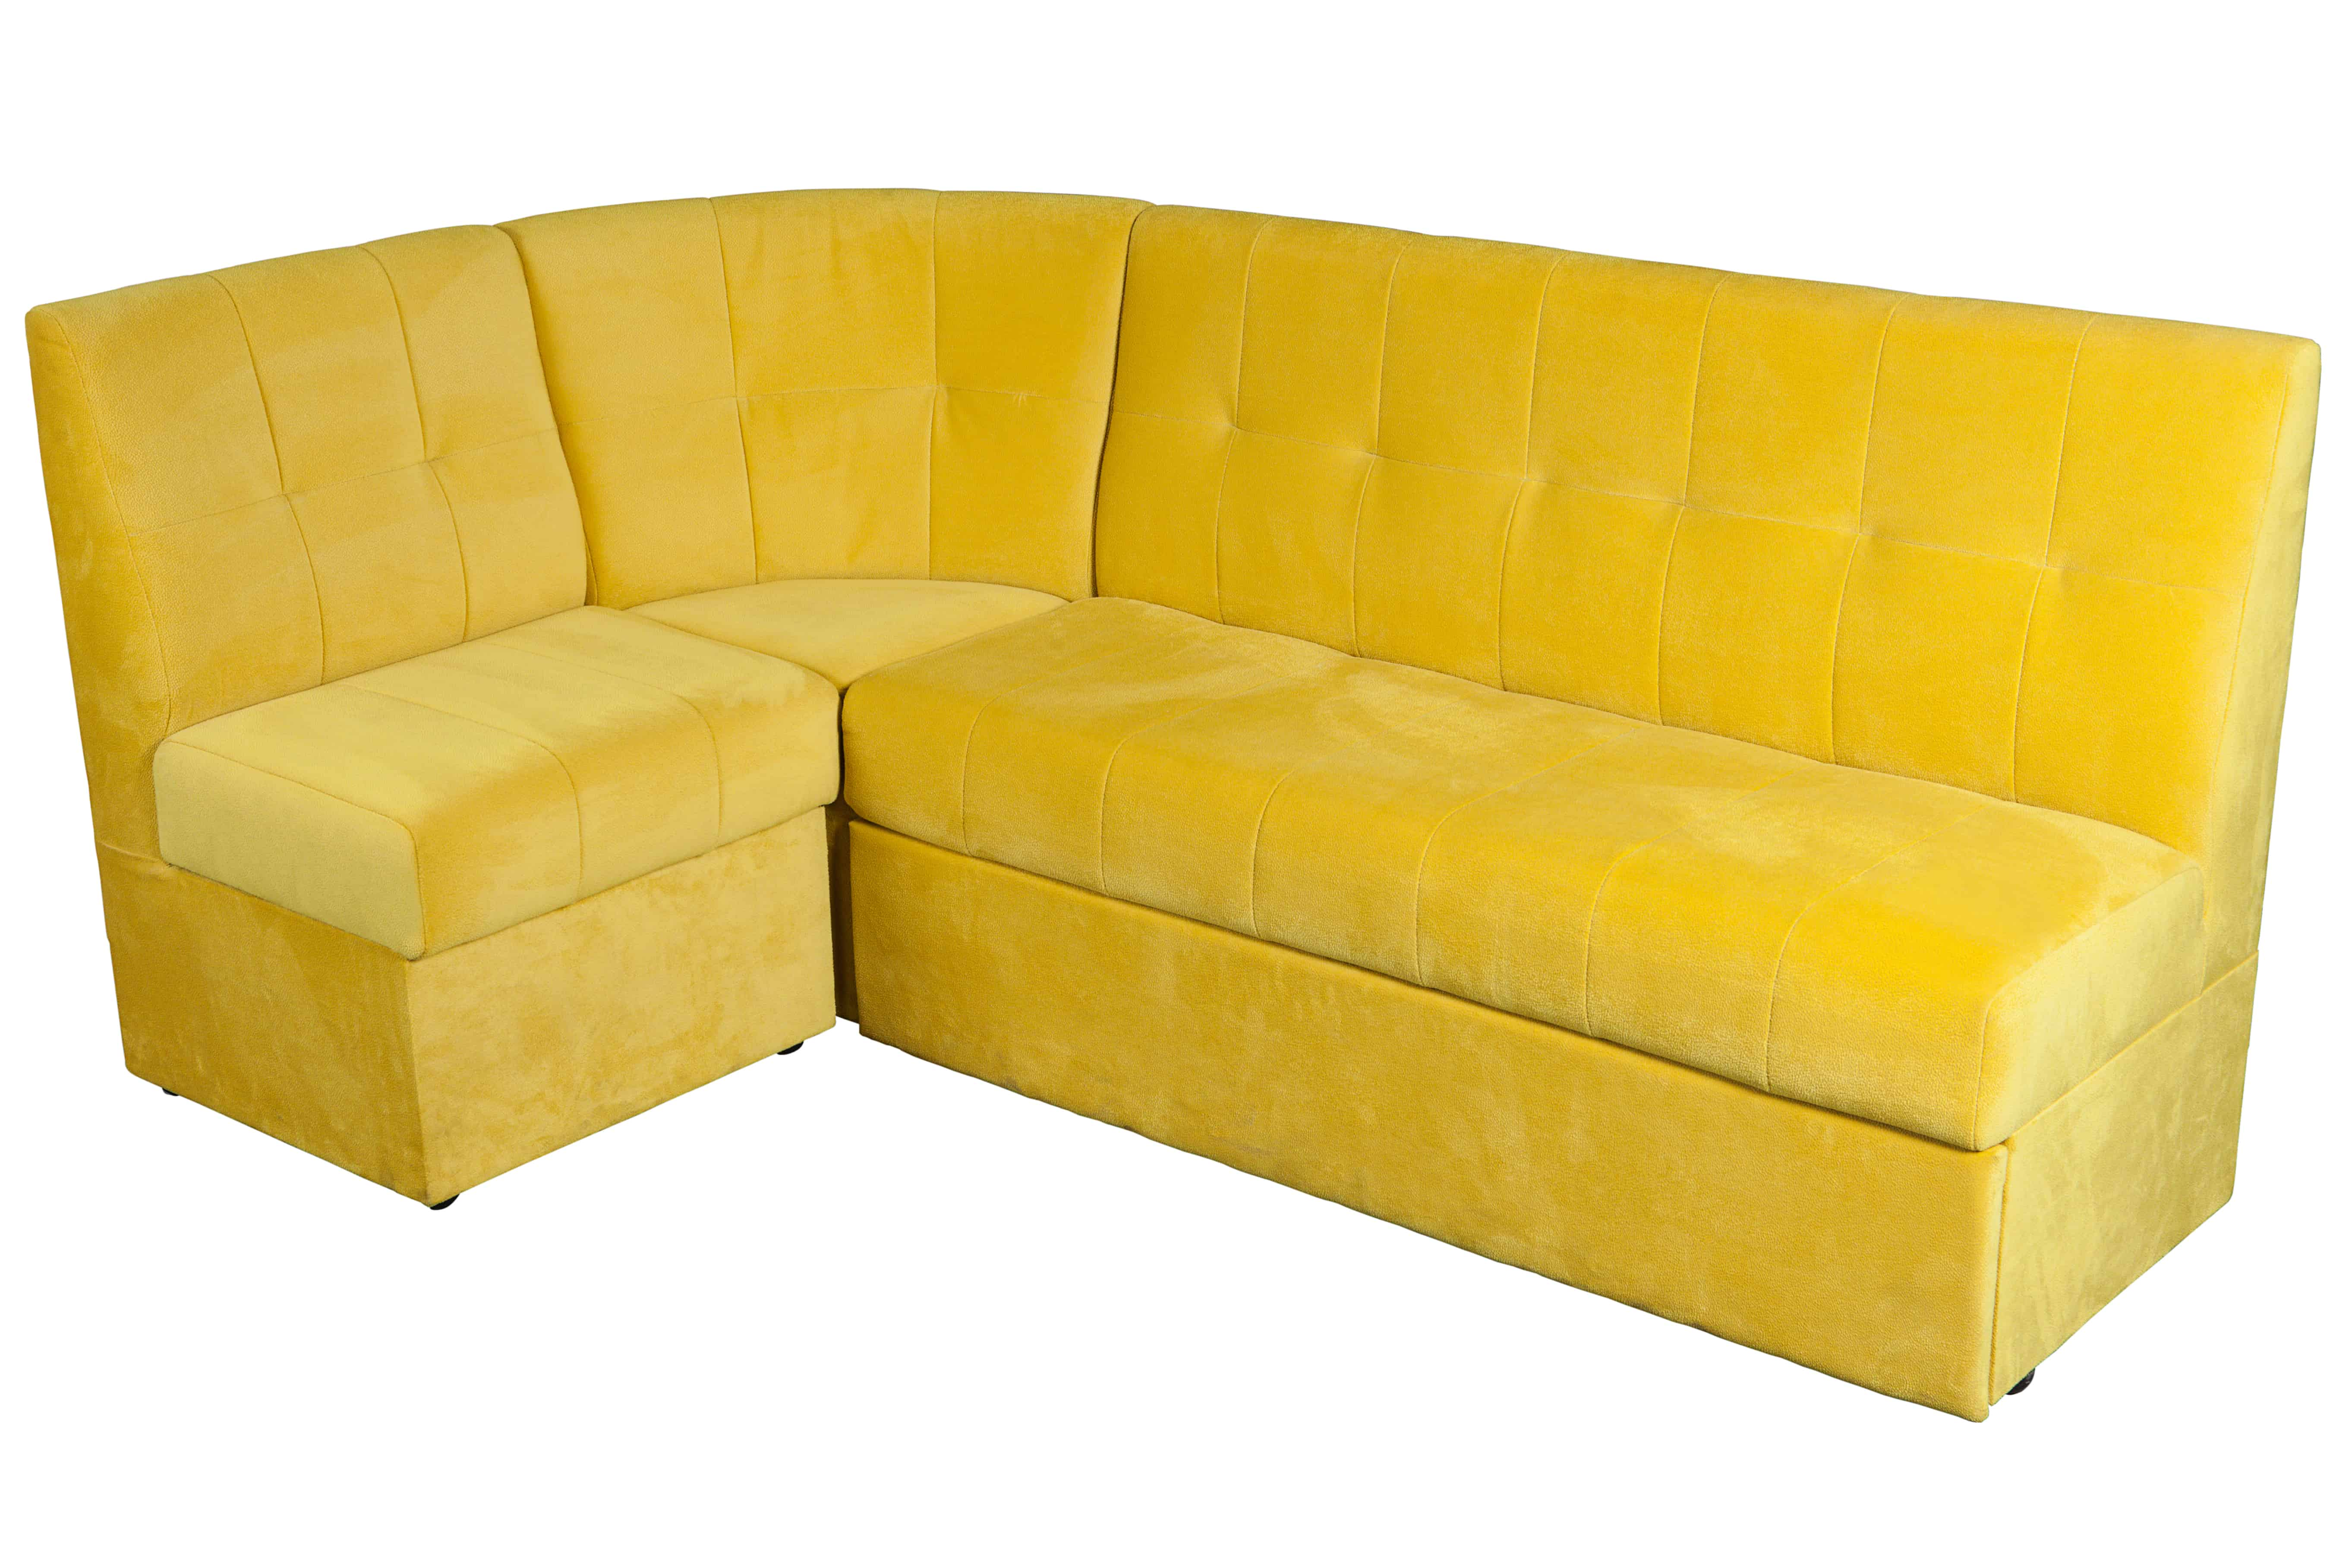 pin microfiber or clean a couch to how counch pass saturated